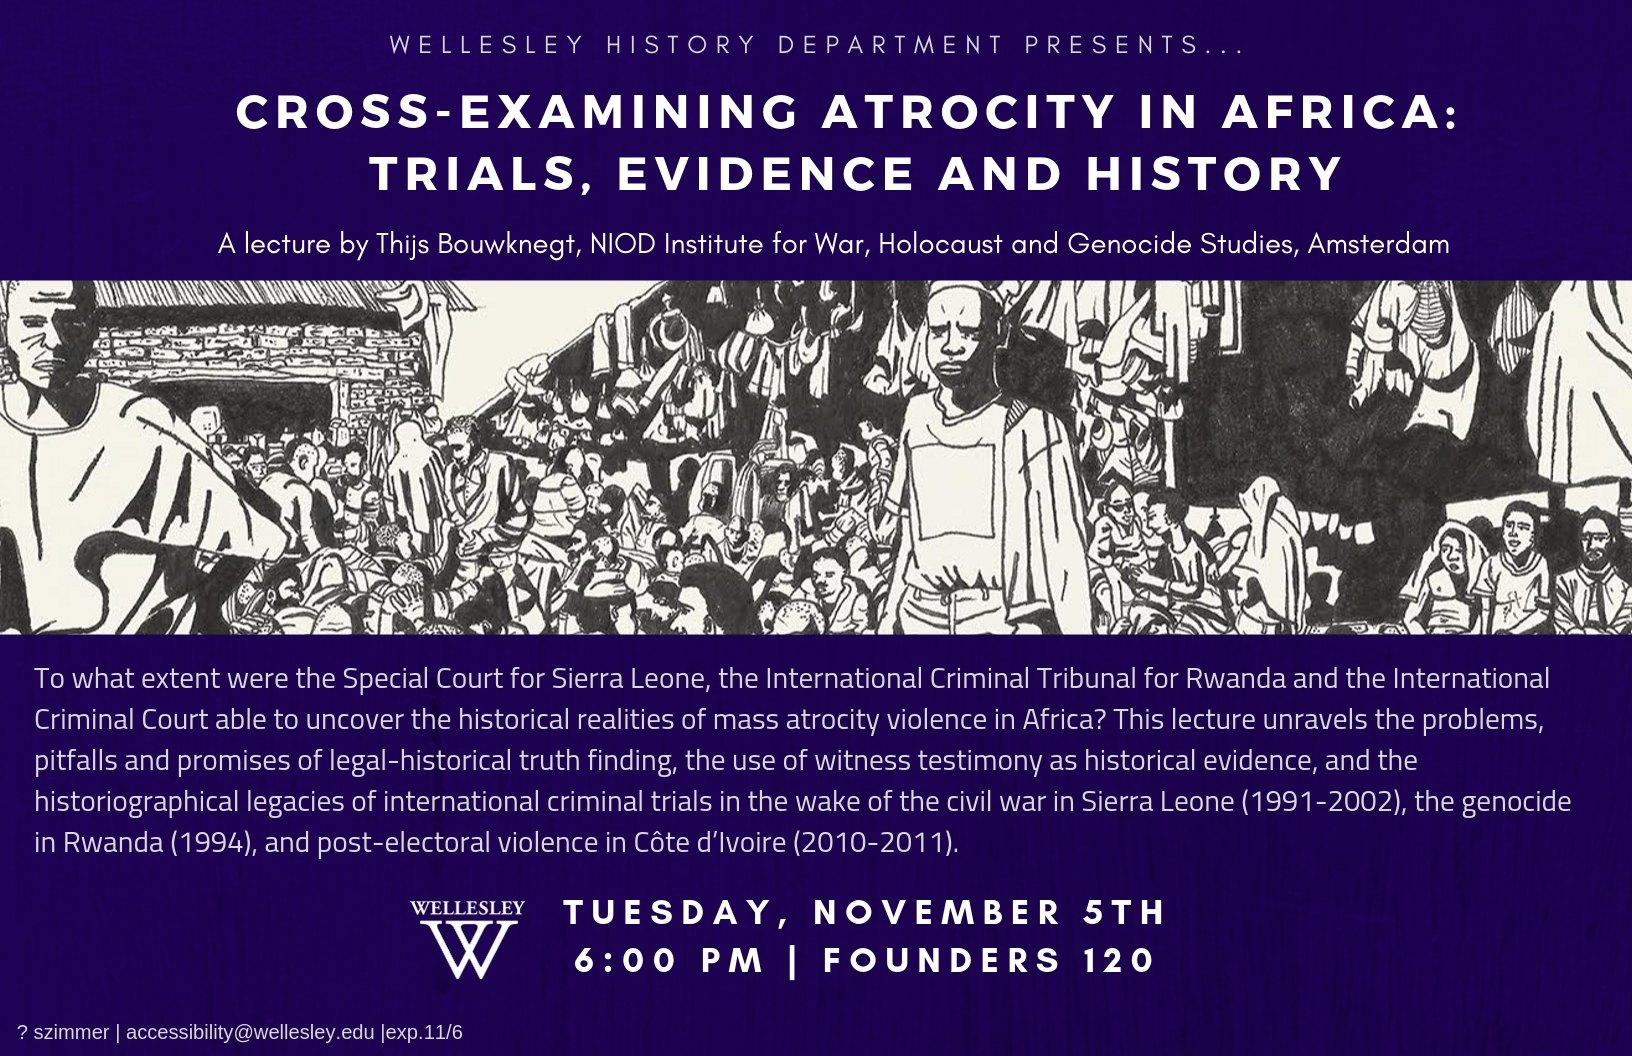 Cross Examining Atrocity in Africa